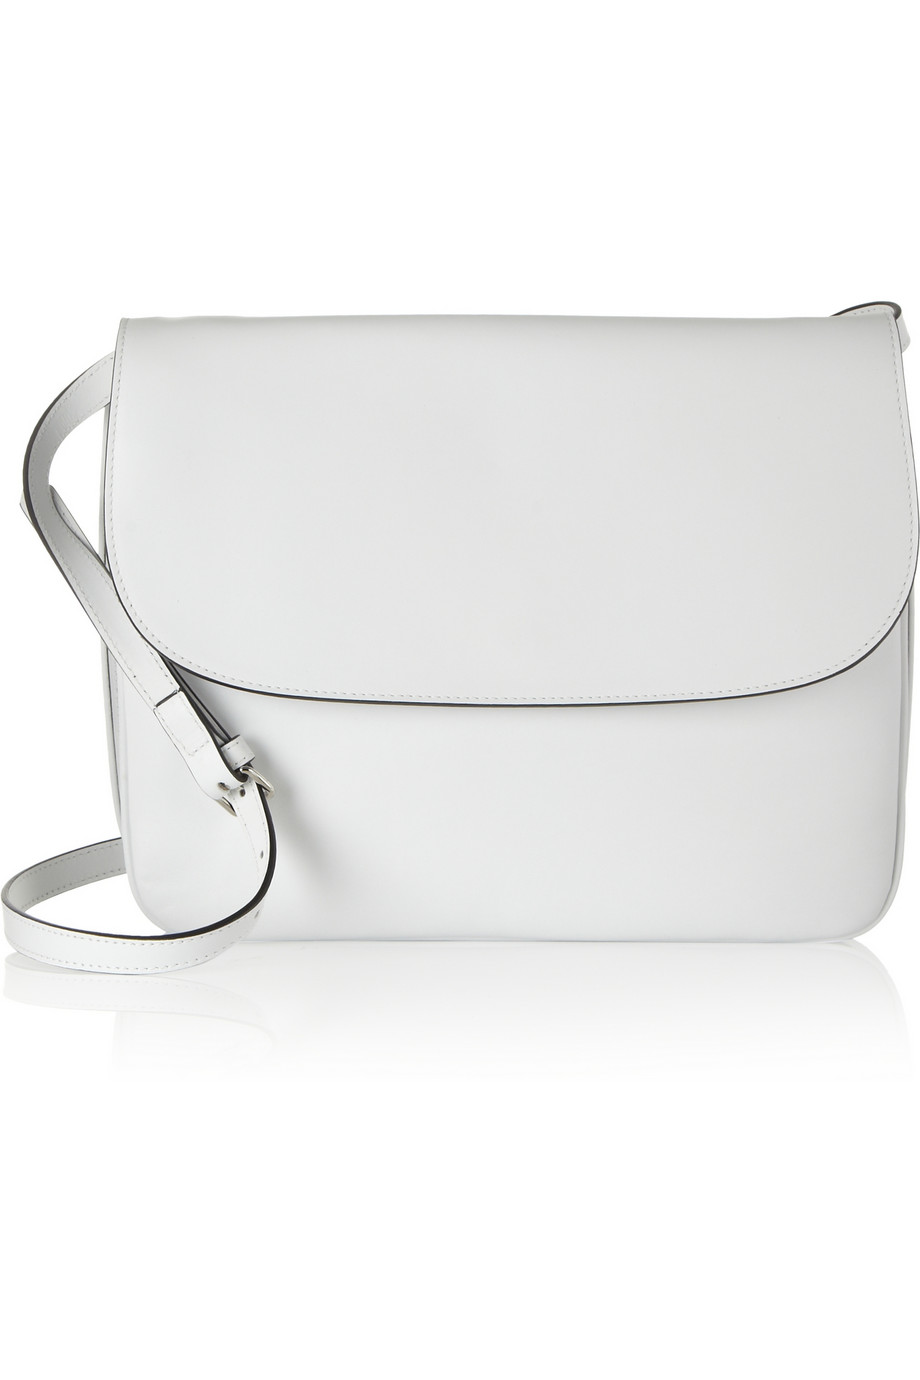 Marni Leather Shoulder Bag in White | Lyst